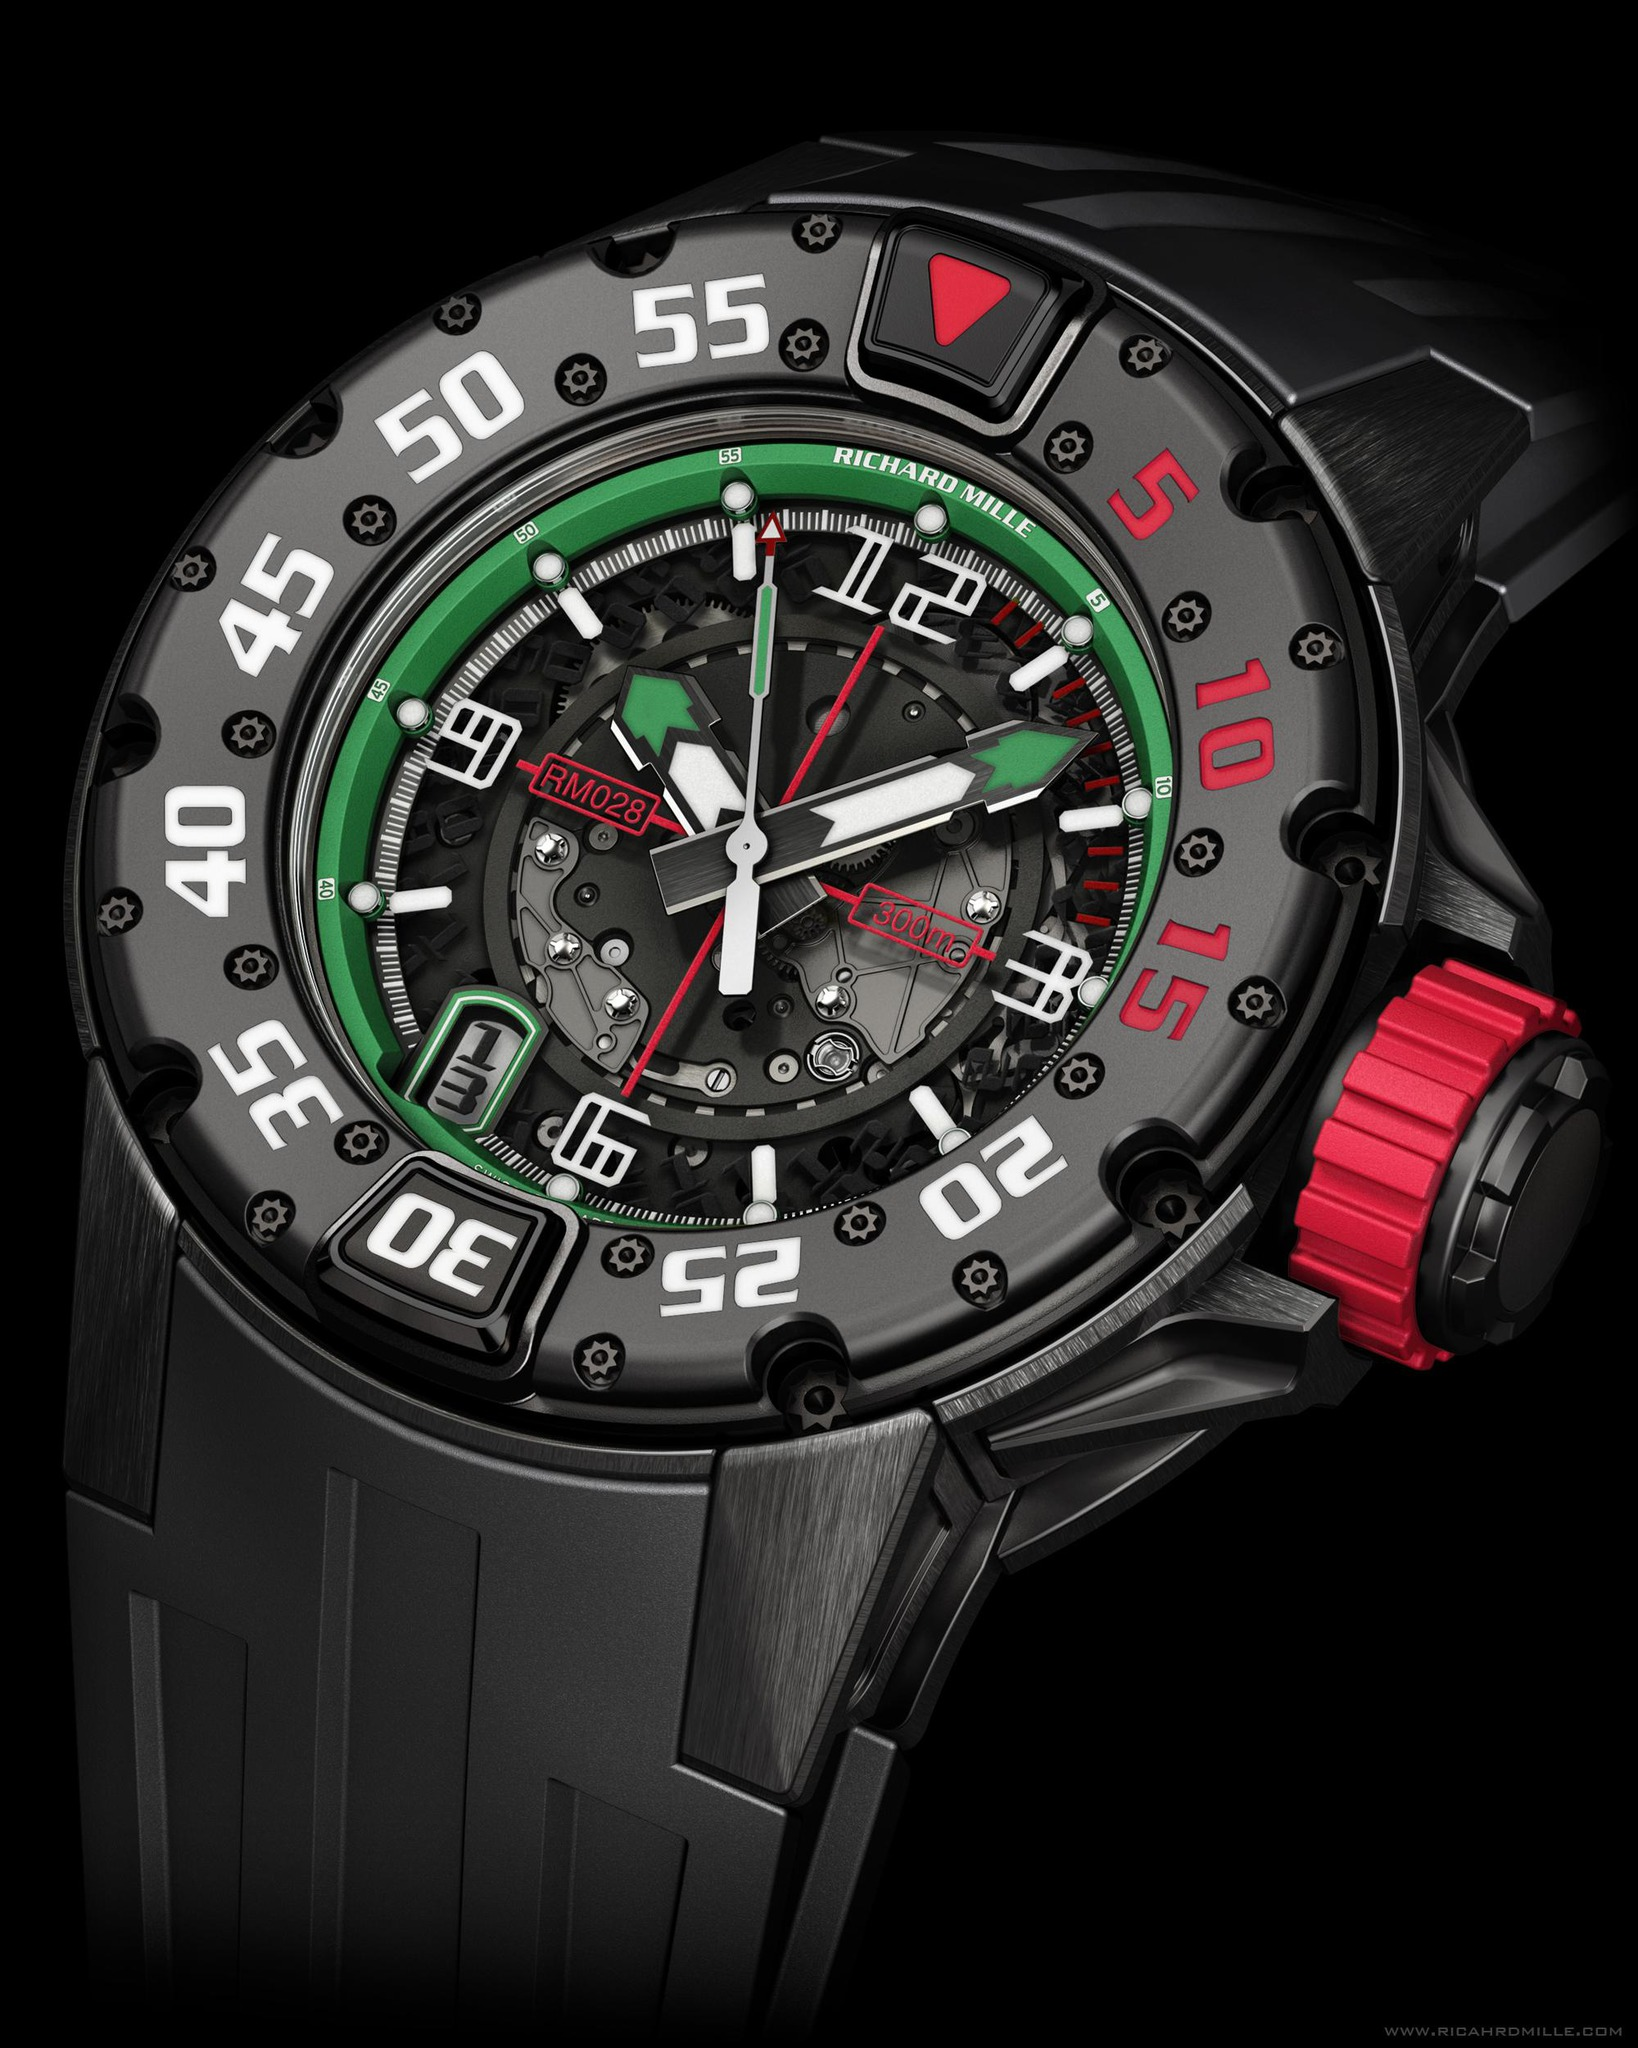 Replica Richard Mille RM 028 Diver Mexico Black Titanium Watch